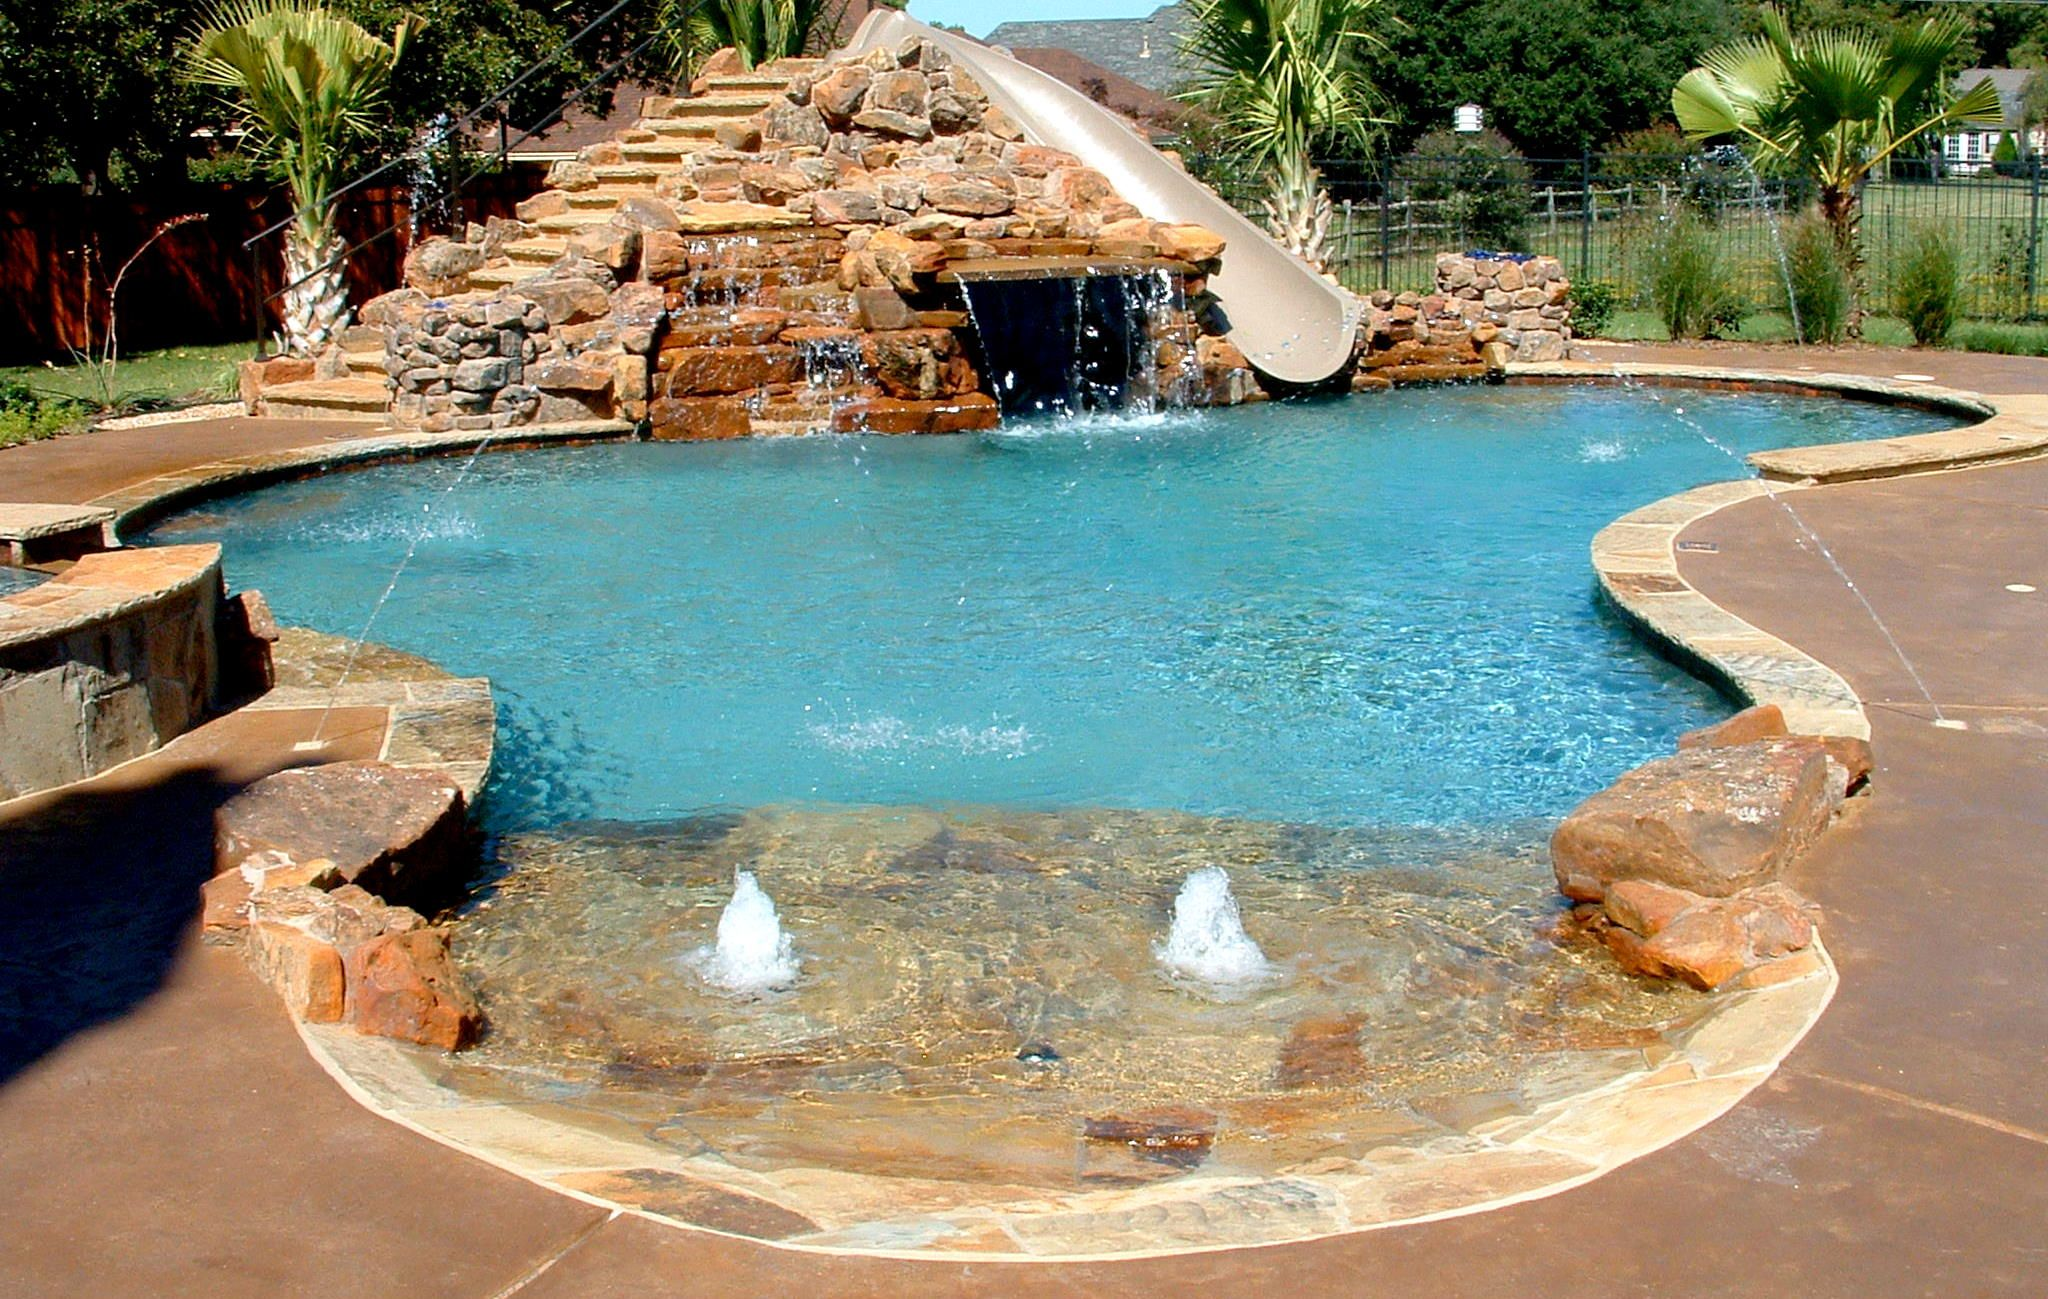 inground pools with rock slides natural swimming pool. Black Bedroom Furniture Sets. Home Design Ideas